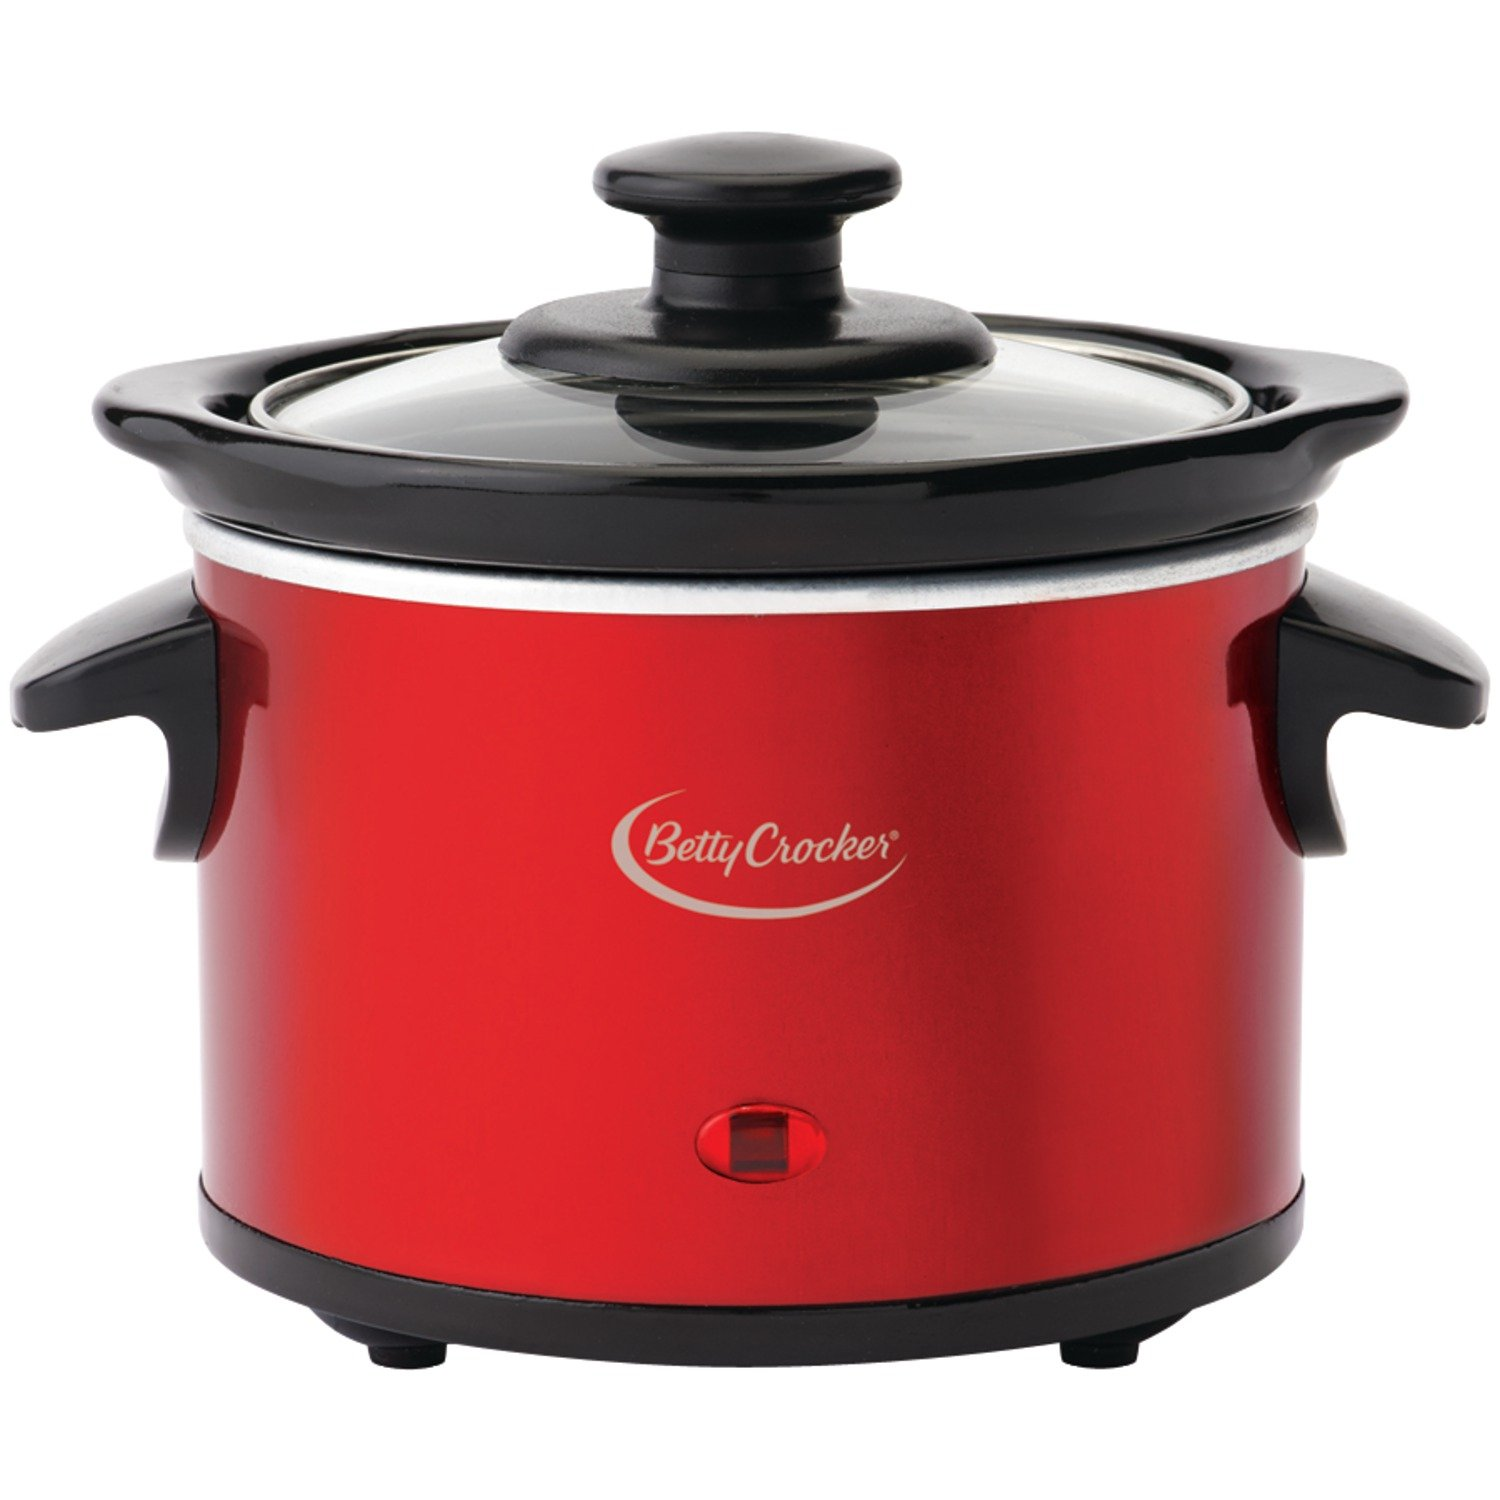 Betty Crocker BC-2555C Slow Cooker, Metallic Red